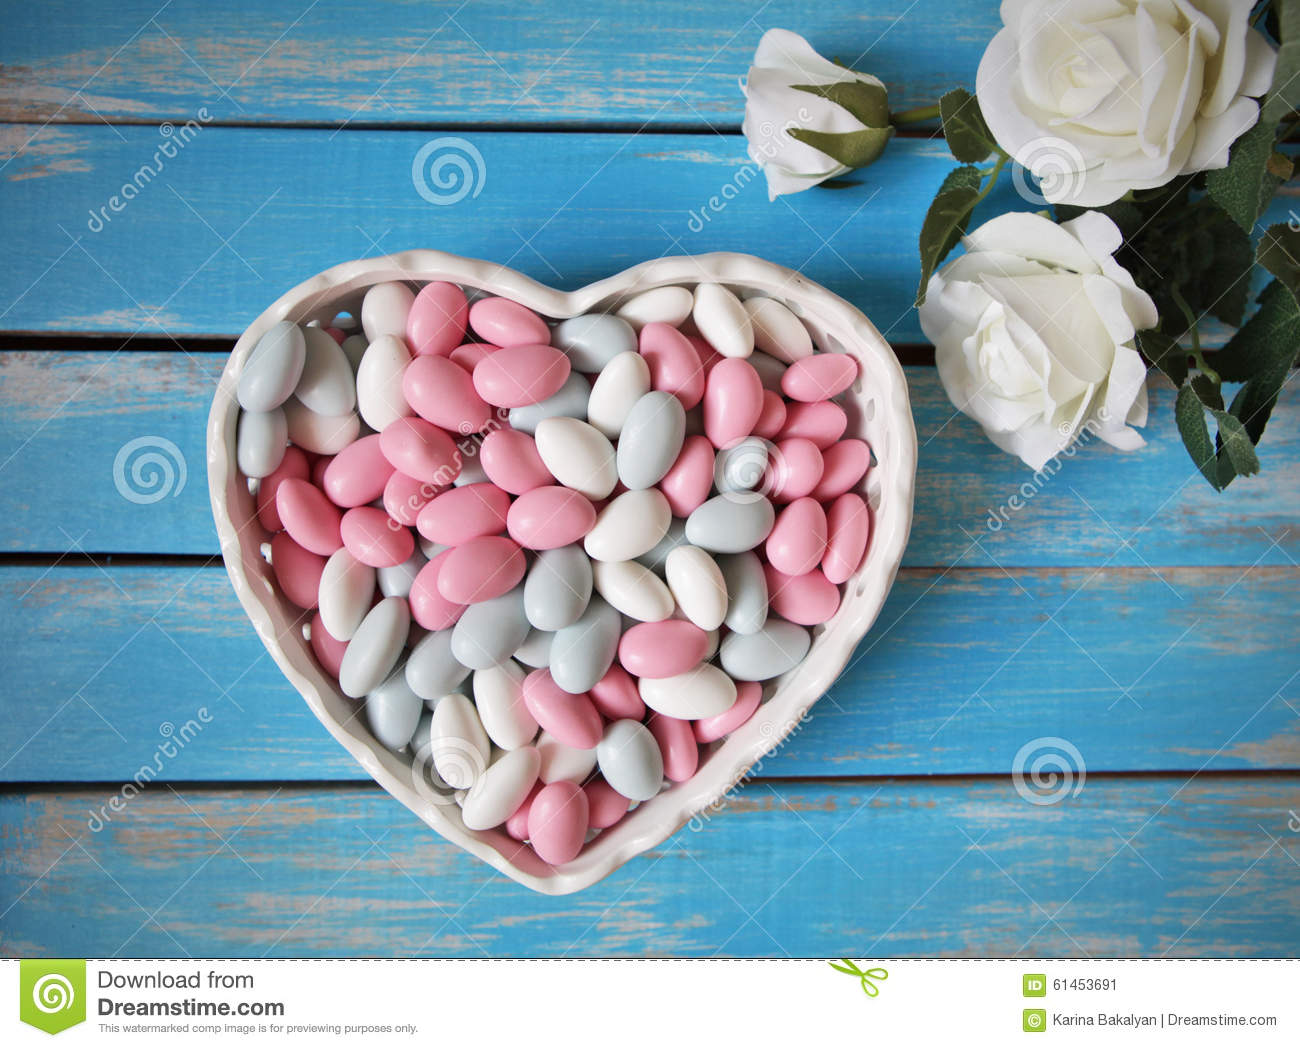 Colorful candy in white heart shaped bowl and white roses on wooden table